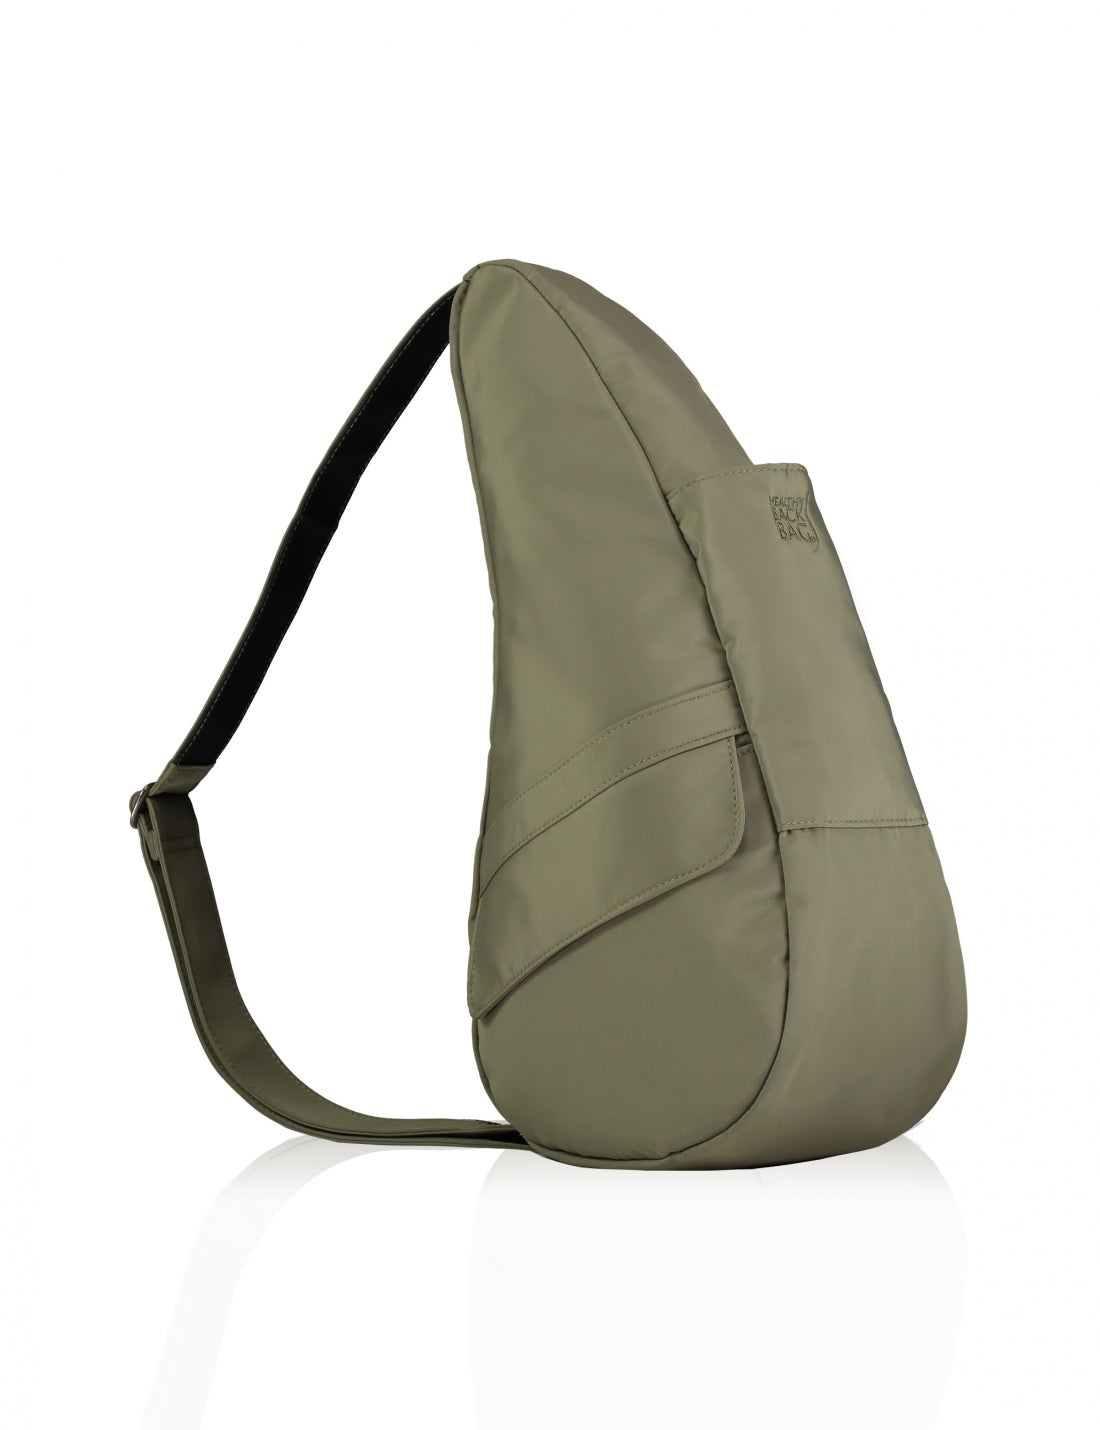 Healthy Back Bag Classic Microfibre Small - Trailblazer Outdoors, Pickering